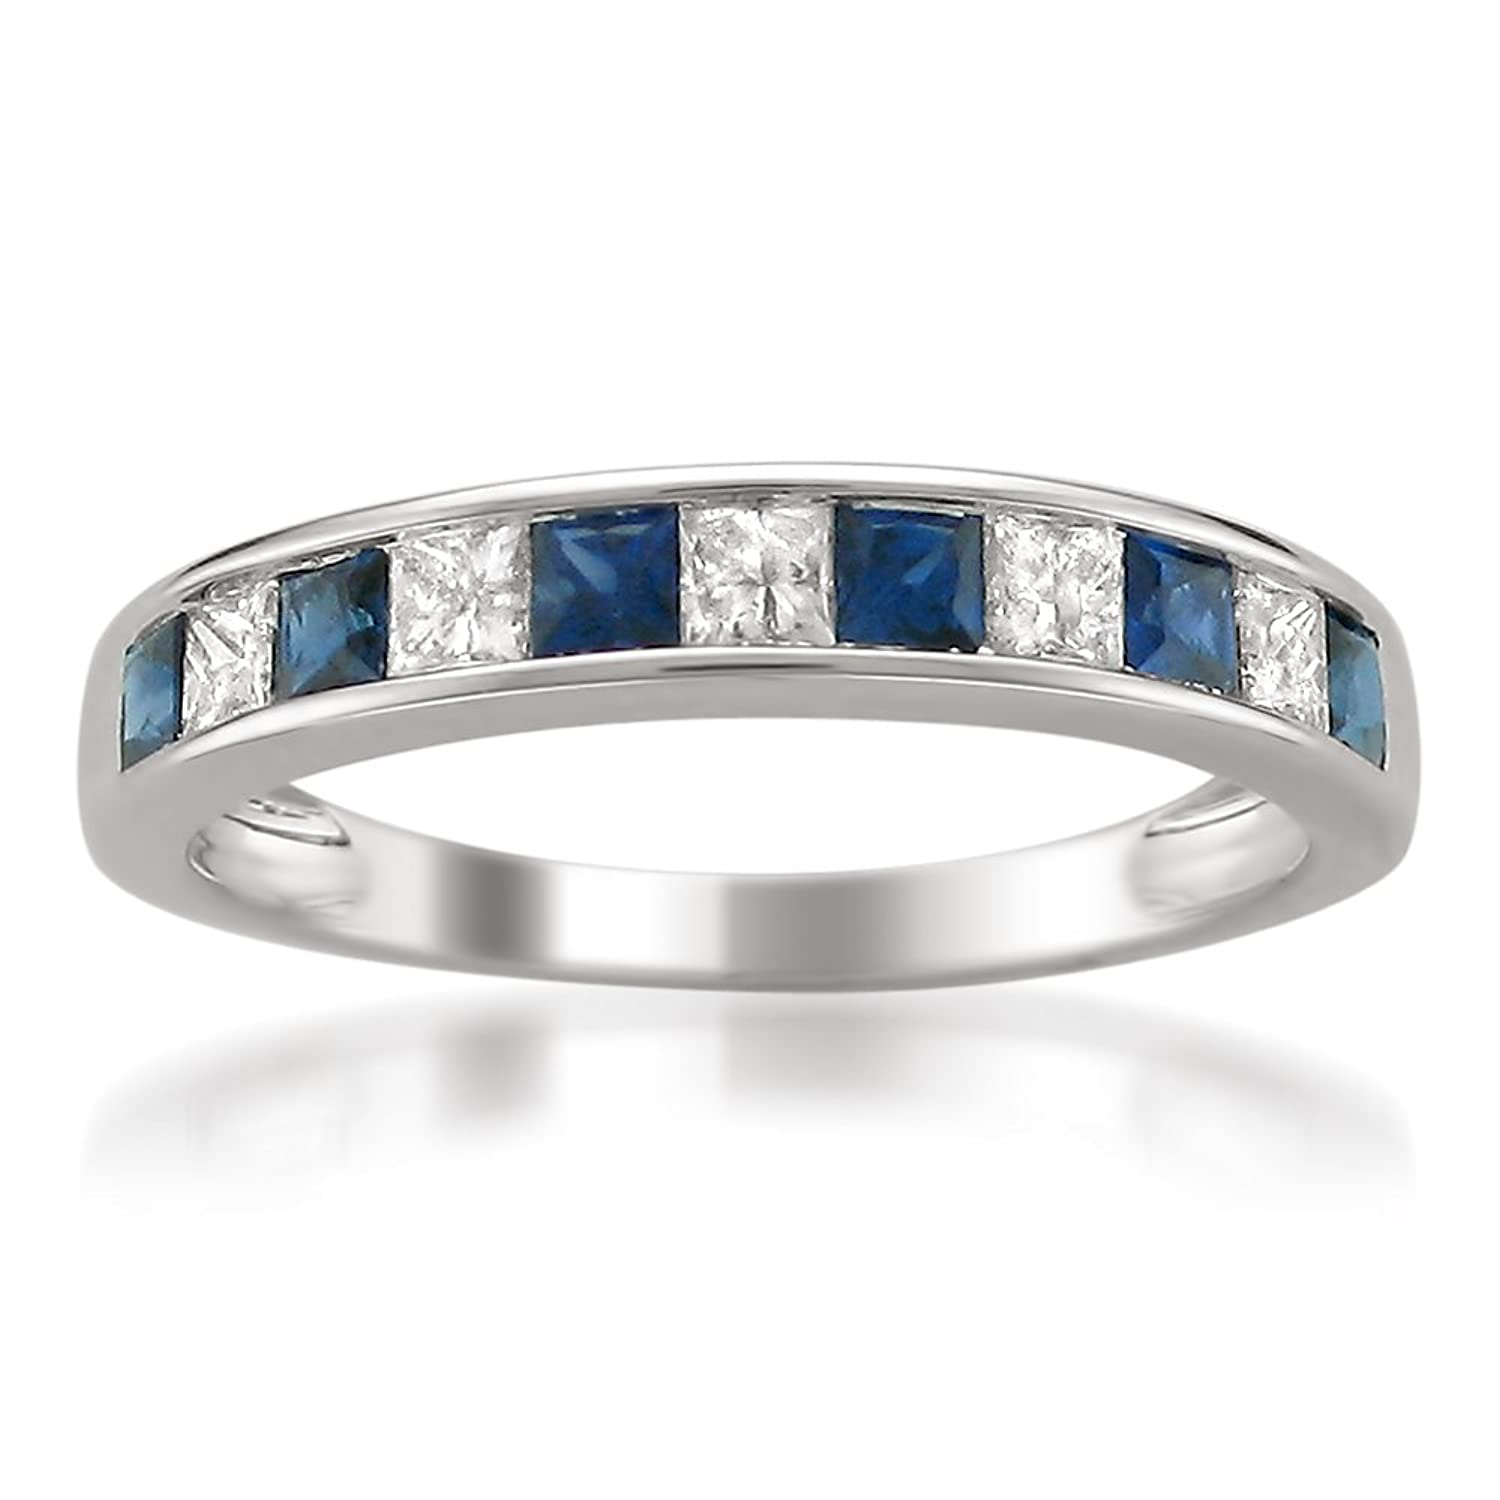 ring and in wedding bands platinum sapphire luna seven engagement saffire rings chic promise diamond stone ktkleja